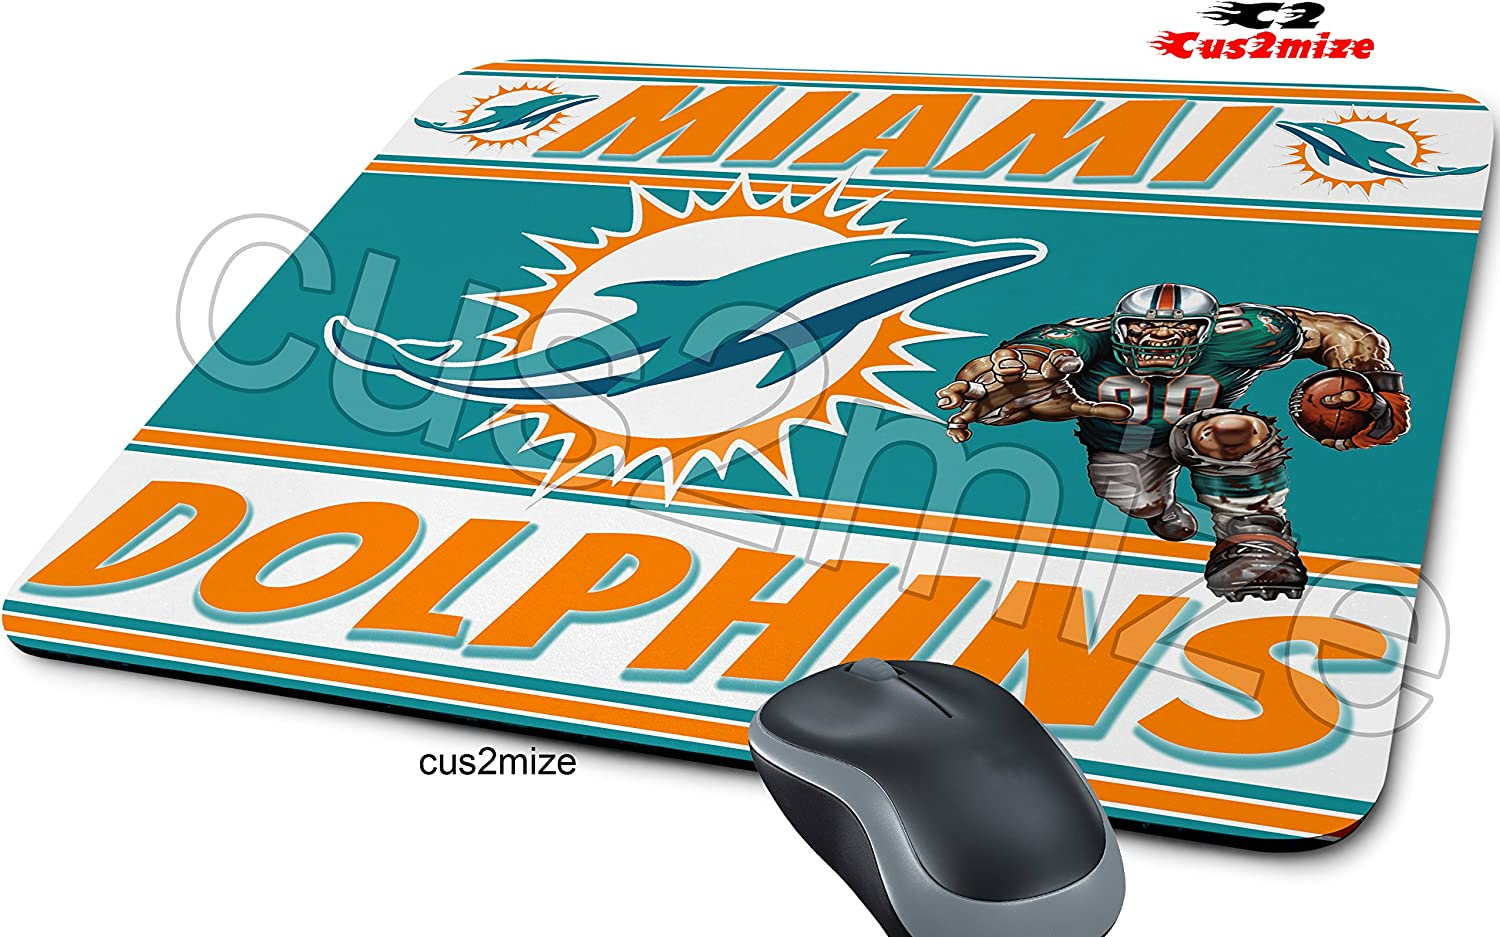 Miami Dolphins Mouse Pad Miami Dolphins Mousepad Sold By Cus2mize 0723736676171